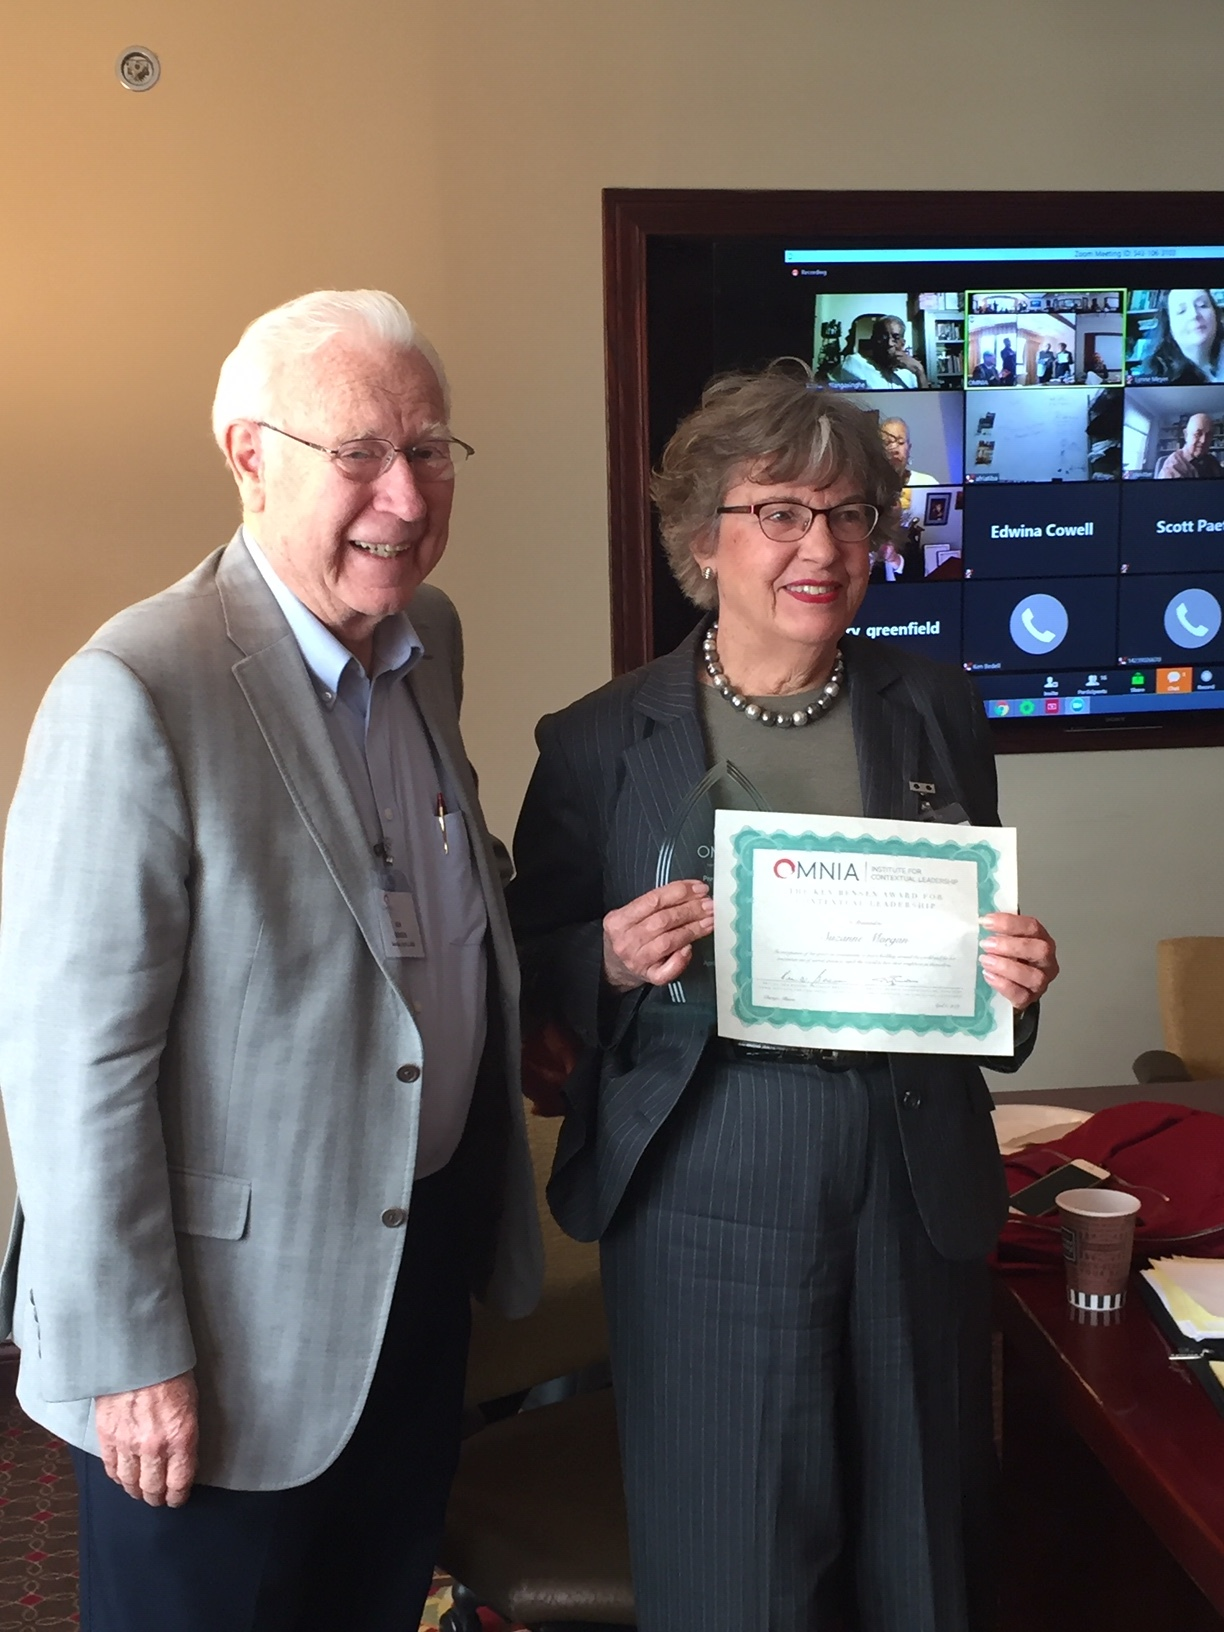 Rev. Dr. Ken Bensen presents OMNIAS's Leadership award to Suzanne Morgan